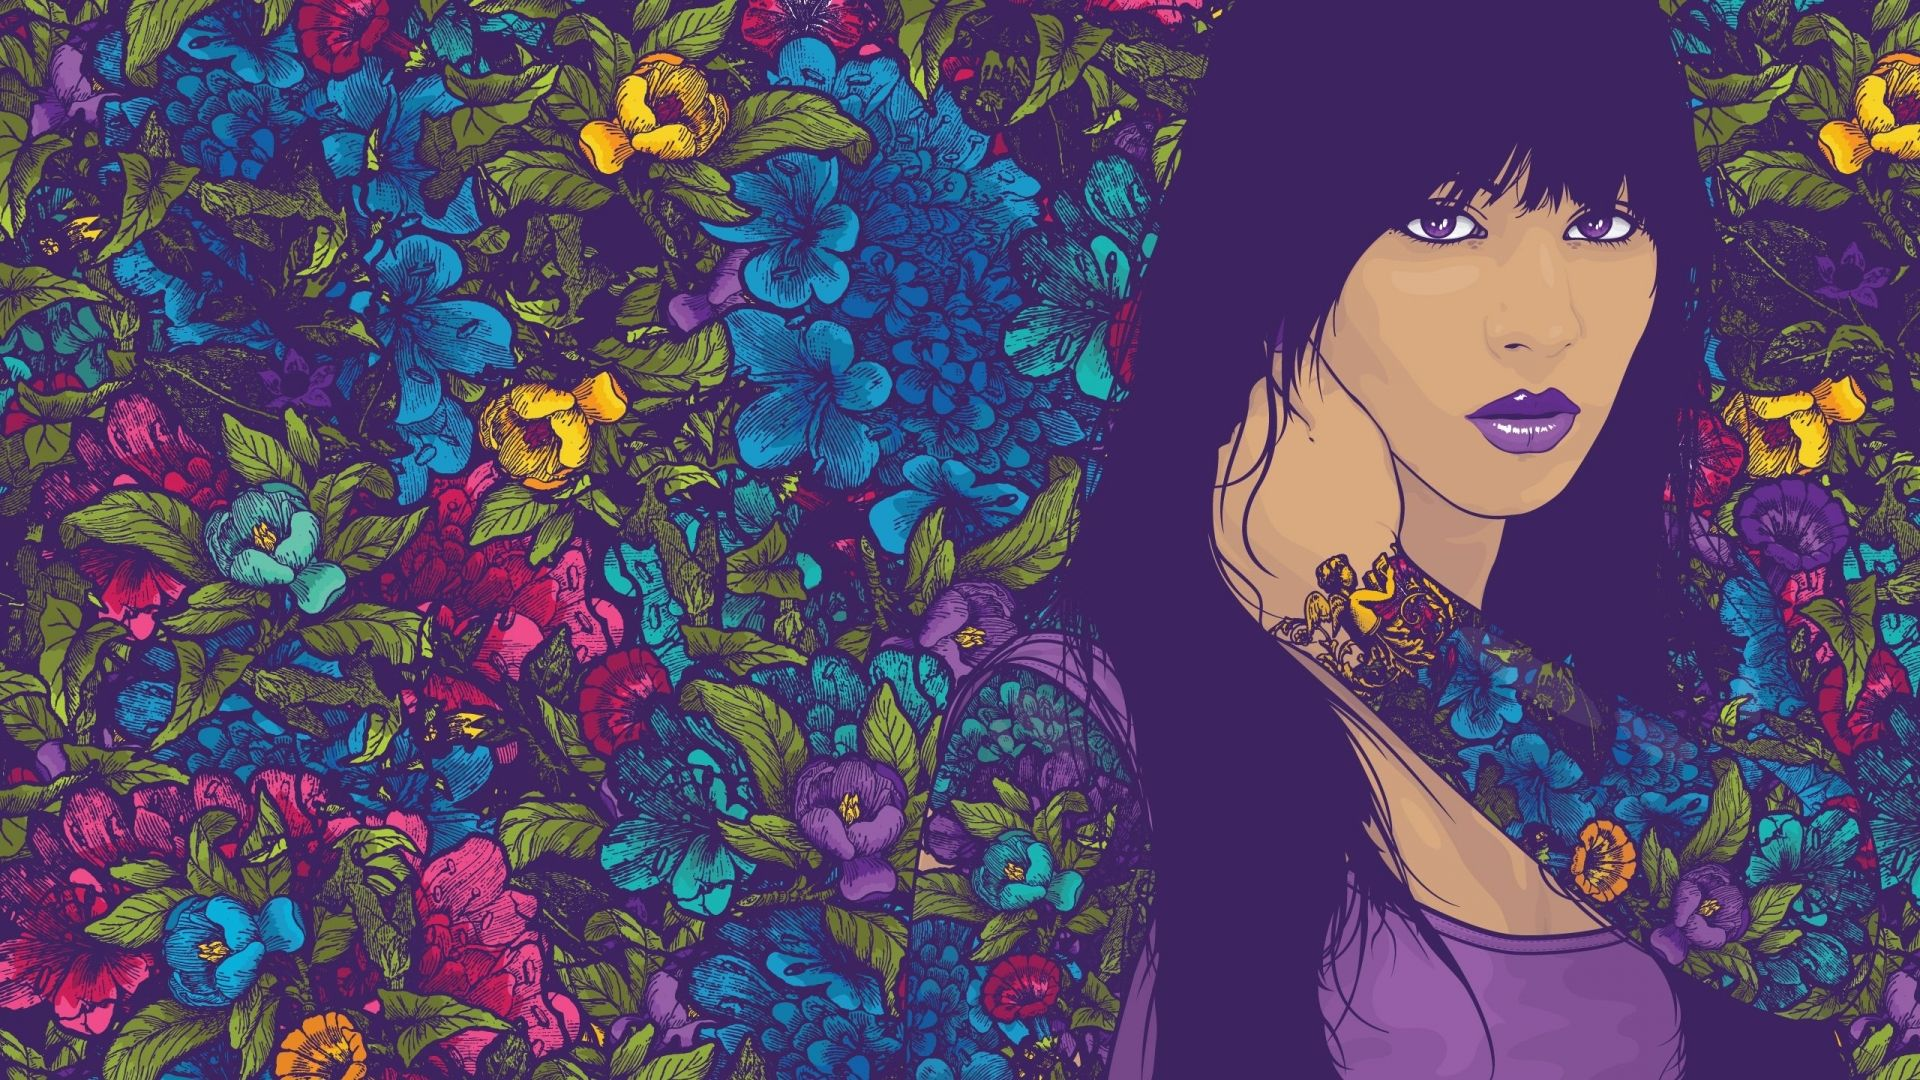 Wallpaper 1920x1080 Full Hd 1080p 1080i Vector Woman Purple